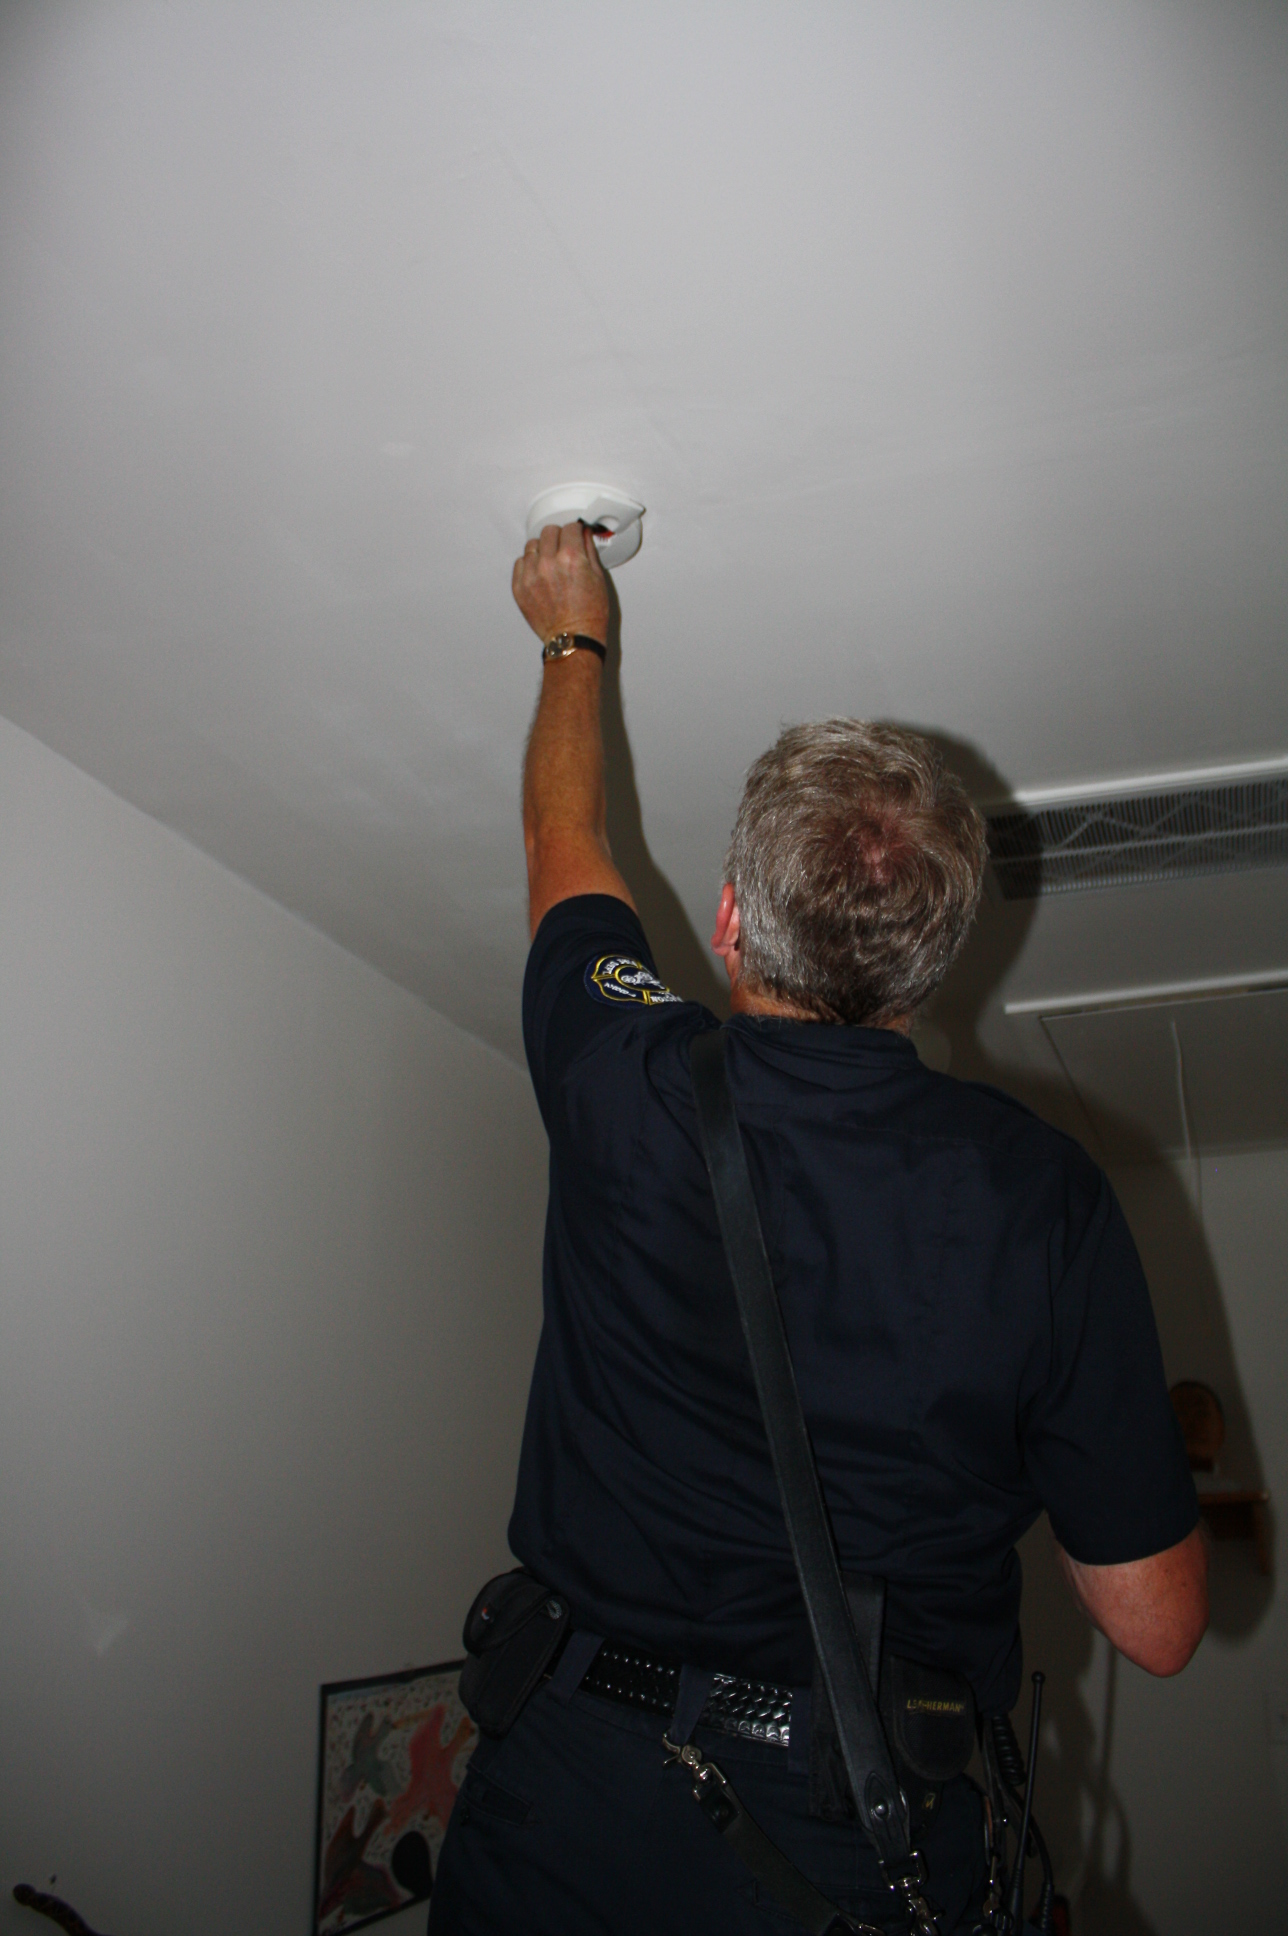 Firefighter Checking Smoke Alarm Batteries